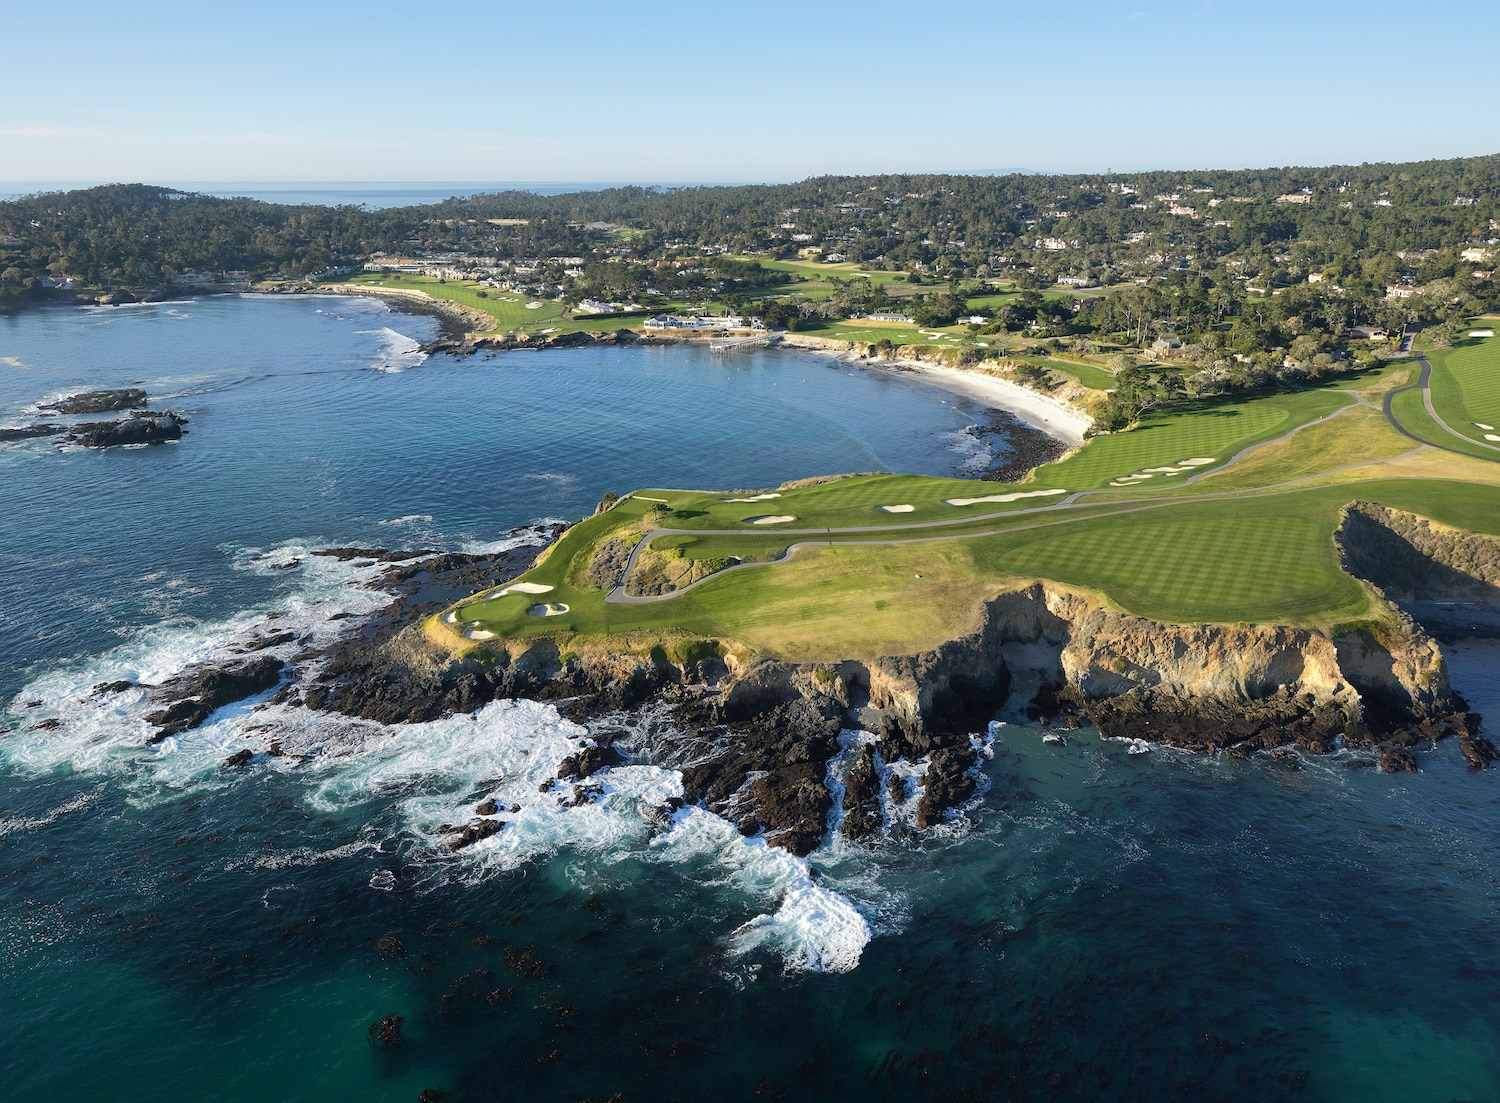 100 Years of Pebble Beach: The U.S. Open